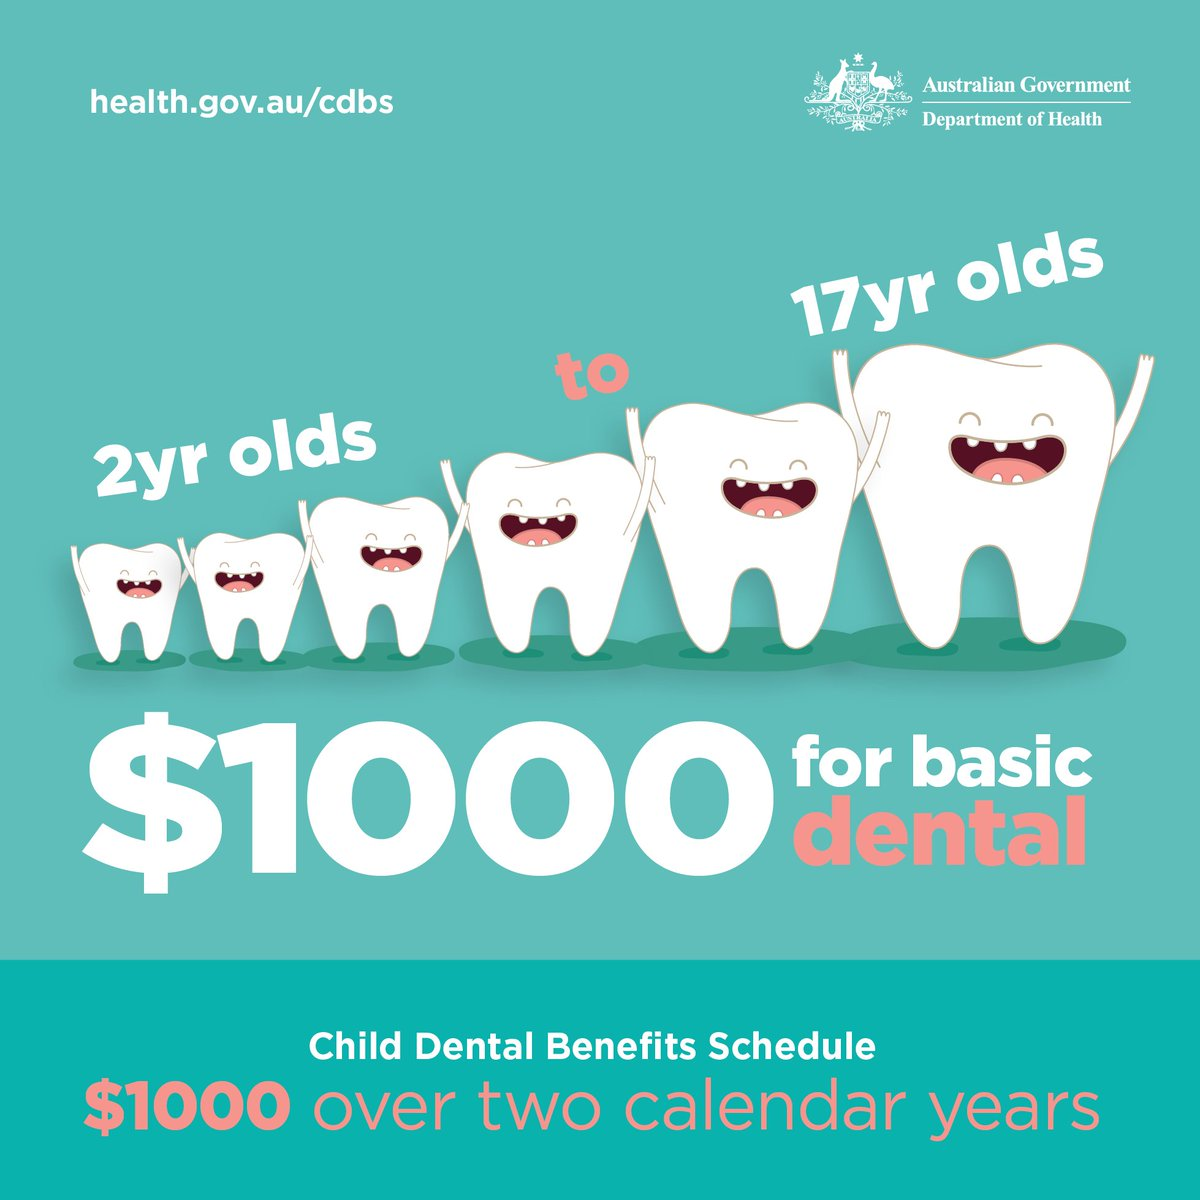 Australian Government Department of Health on Twitter: